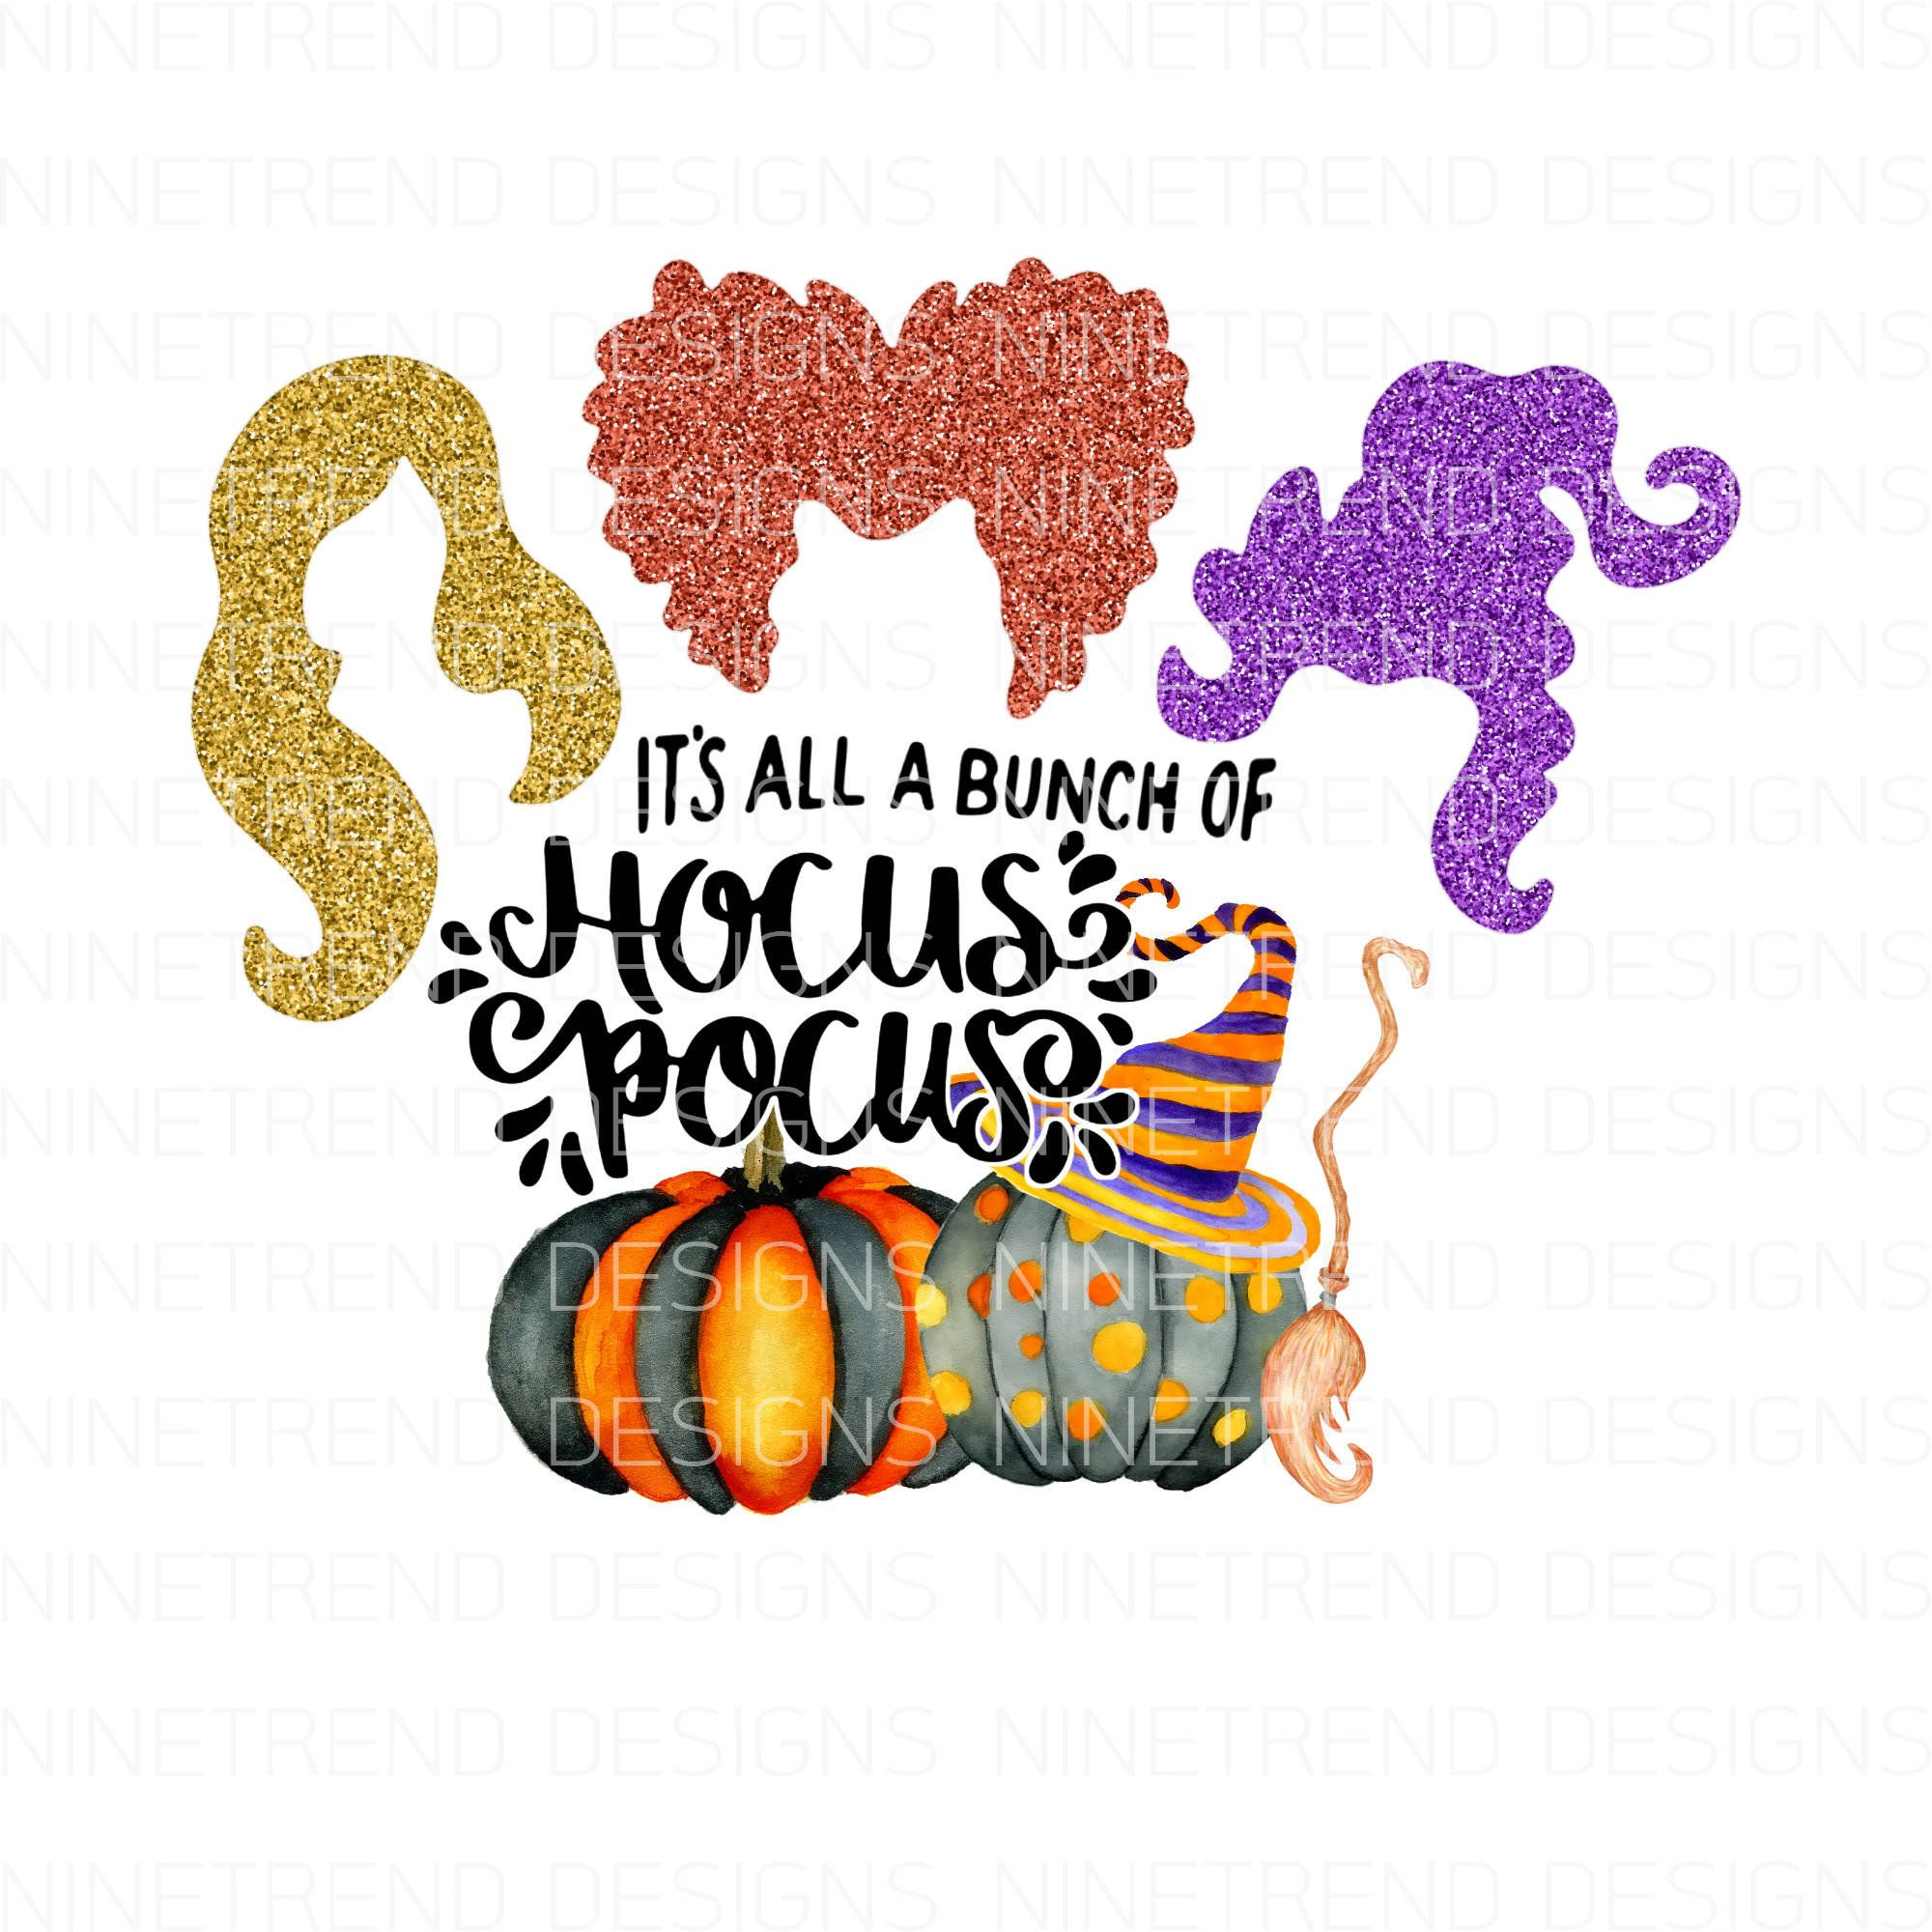 Witch Hocus Pocus Pngsanderson Sisters Sublimation Designs Etsy In 2021 Hocus Pocus Shirt Design Witch Wallpaper Sister Wallpaper